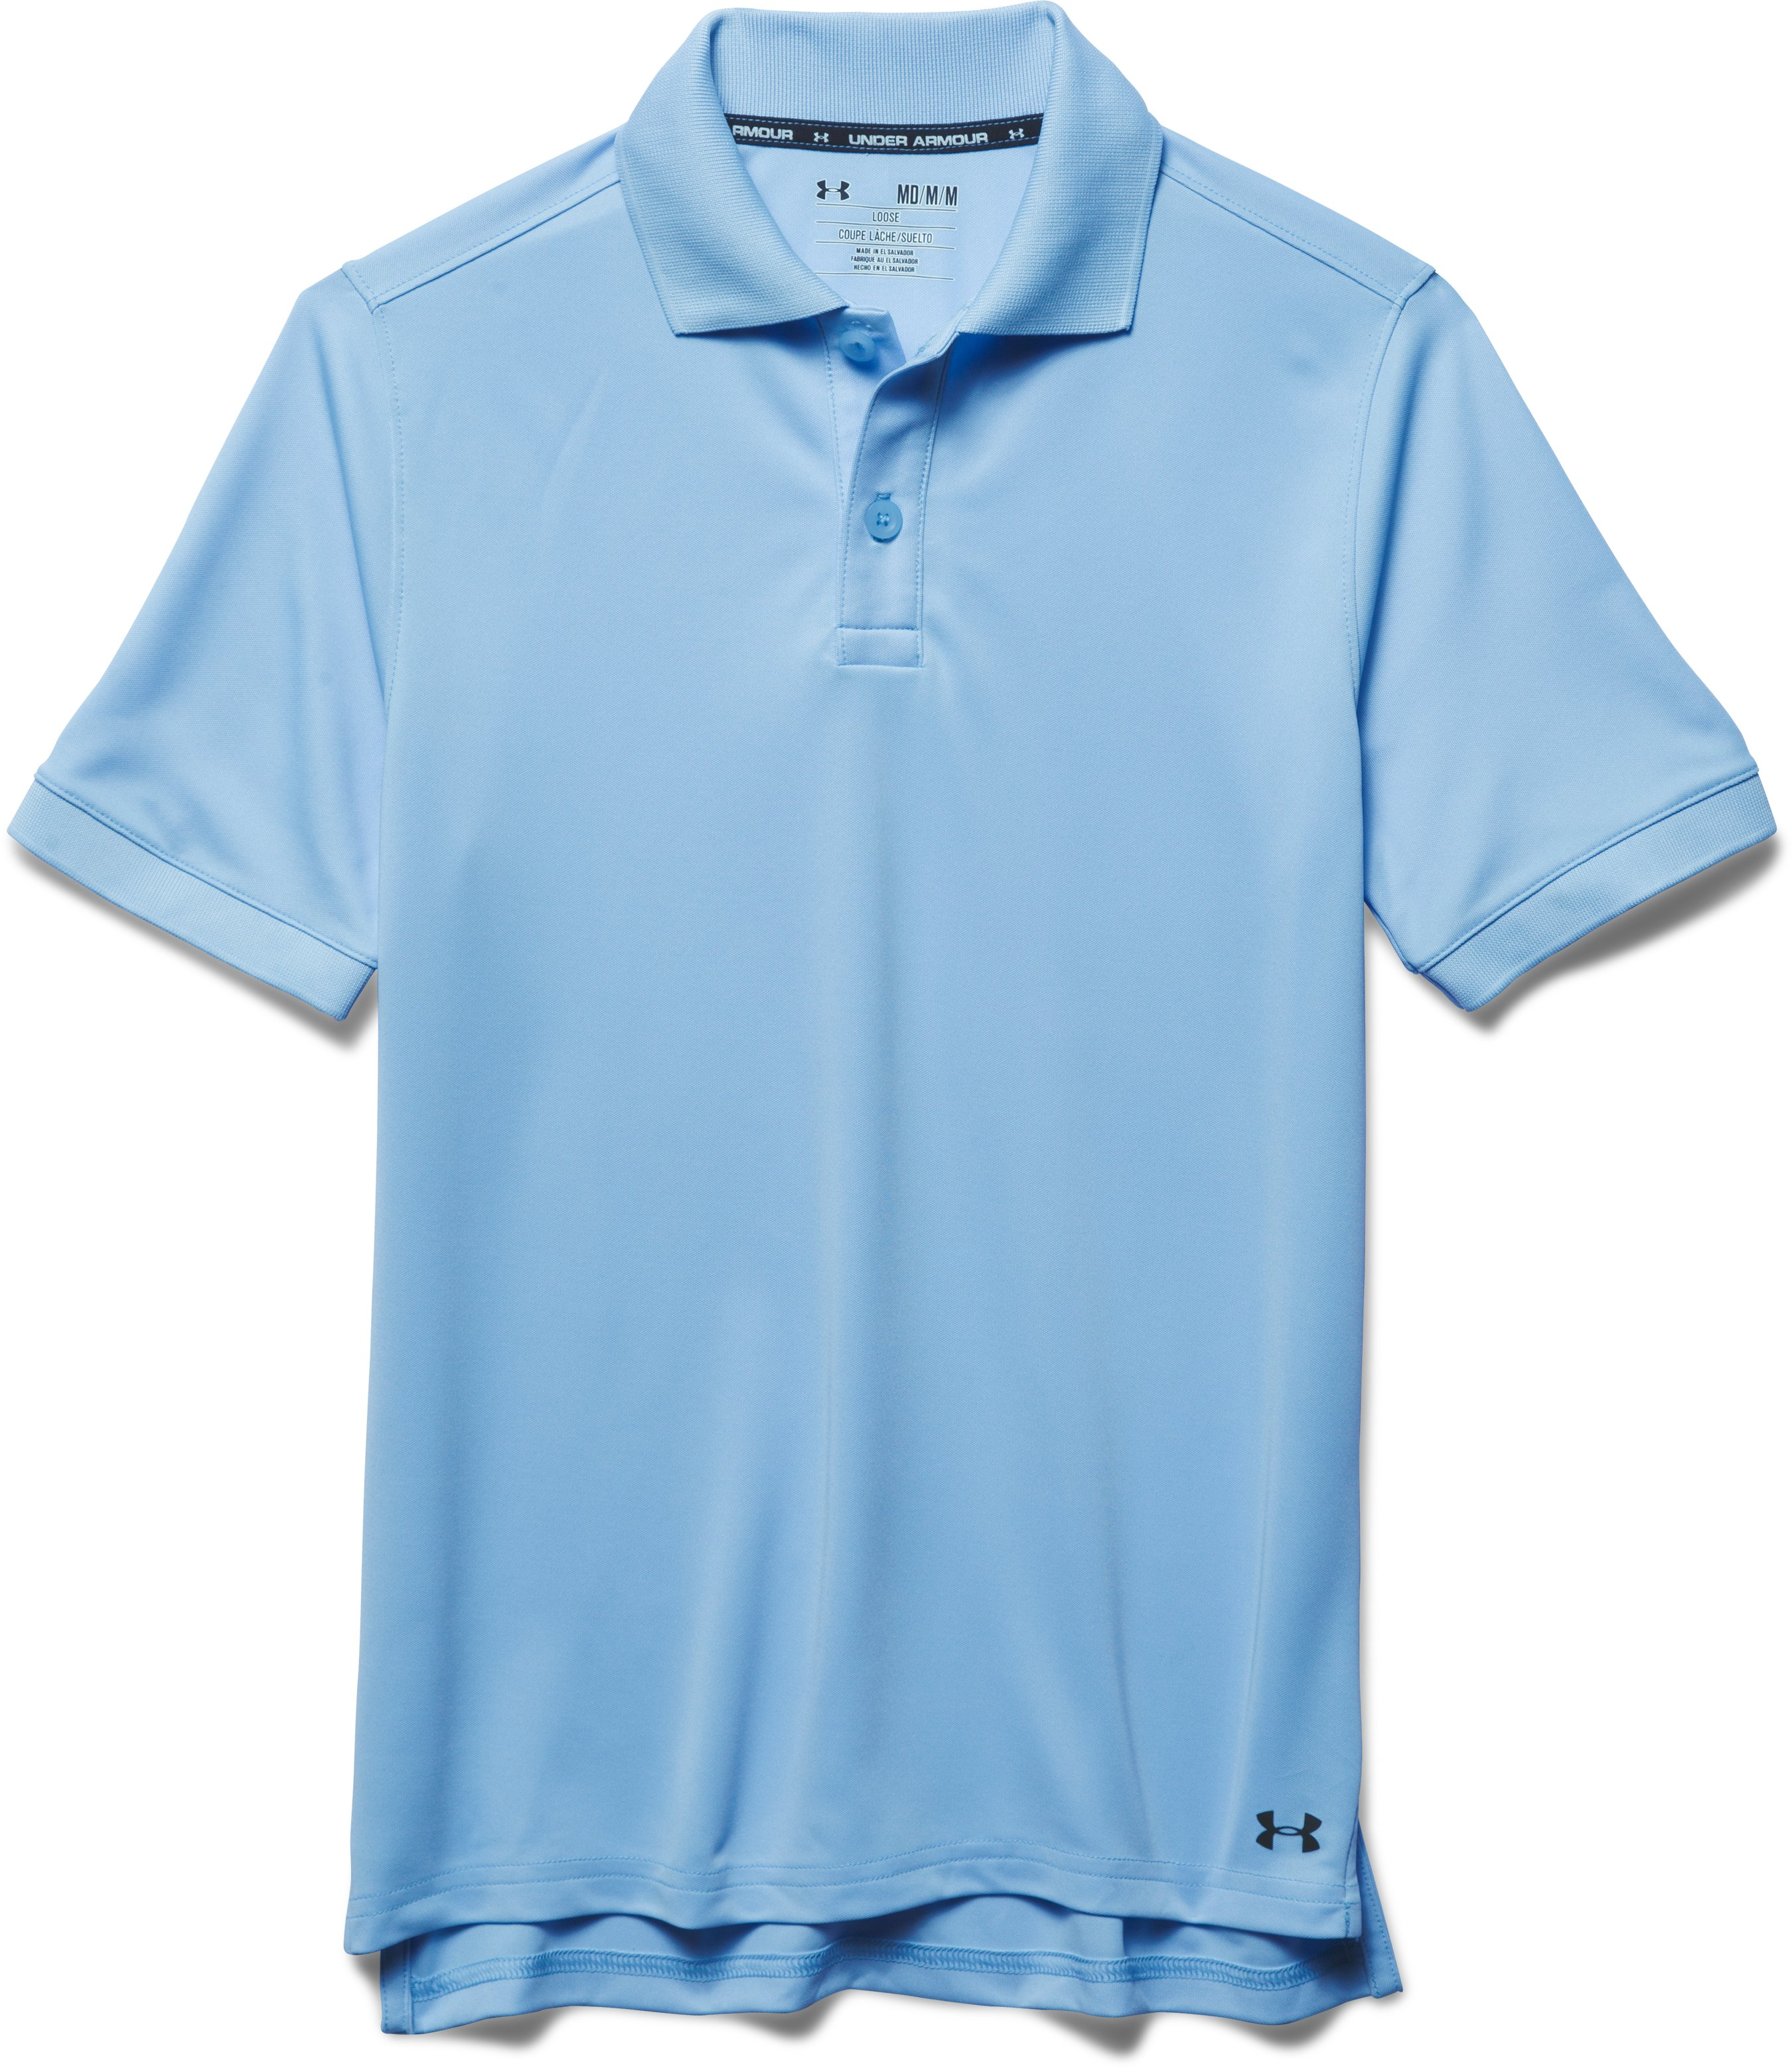 UA Uniform Short Sleeve Polo – Pre-School, Jetstream